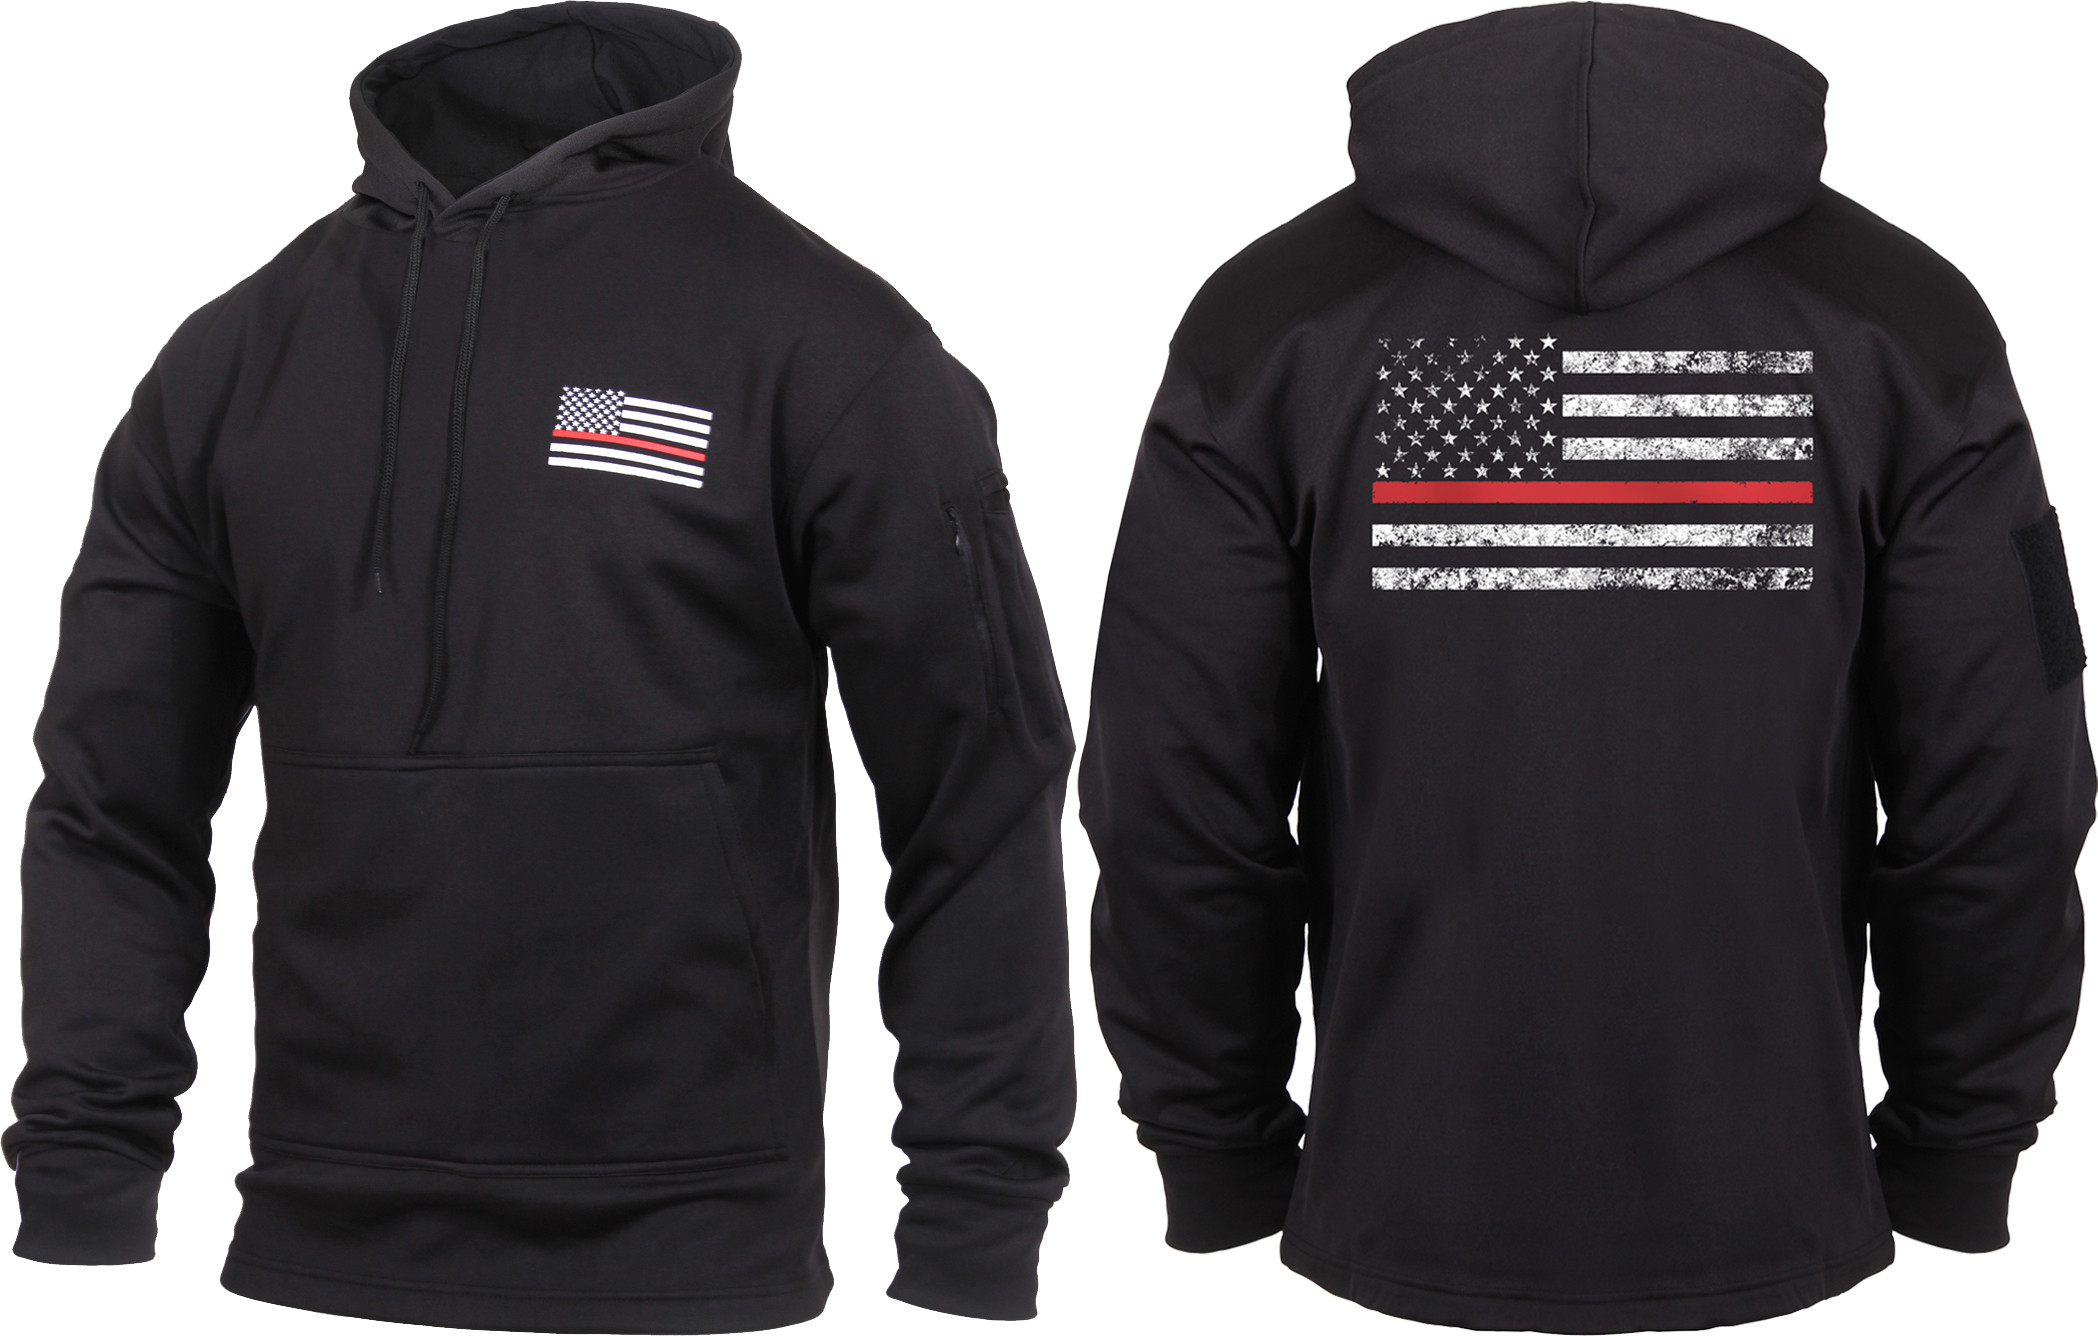 Black Concealed Carry Subdued Thin Red Line Hoodie Sweatshirt 8d77745fd0c